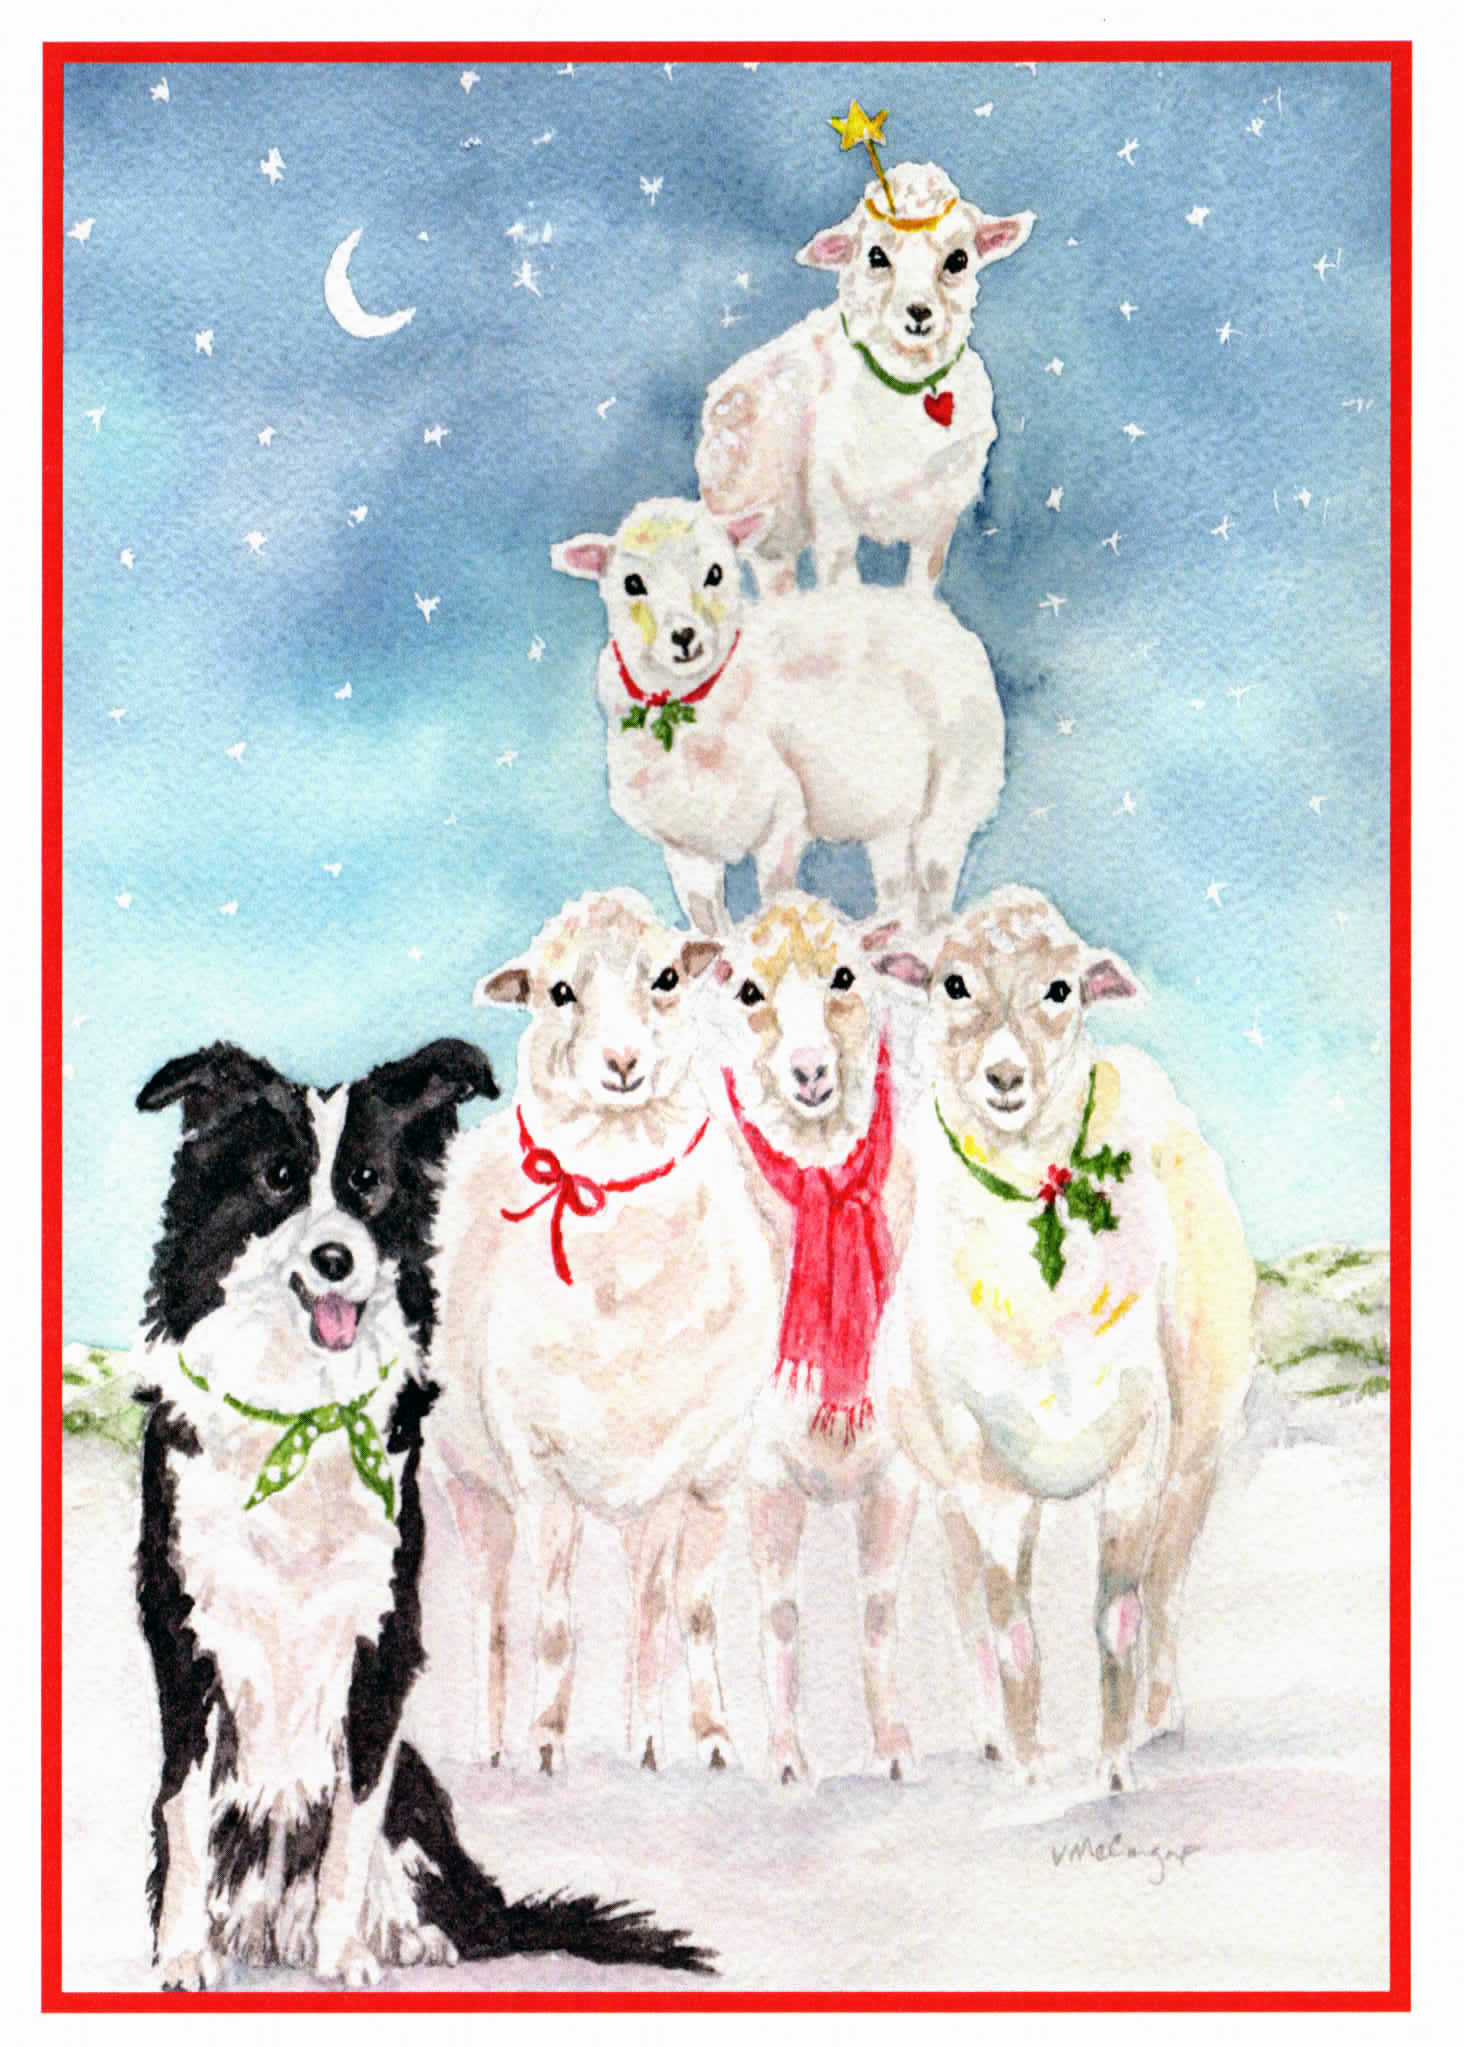 Border Collie and Sheep Christmas Card. Pet Holiday Card. | Etsy